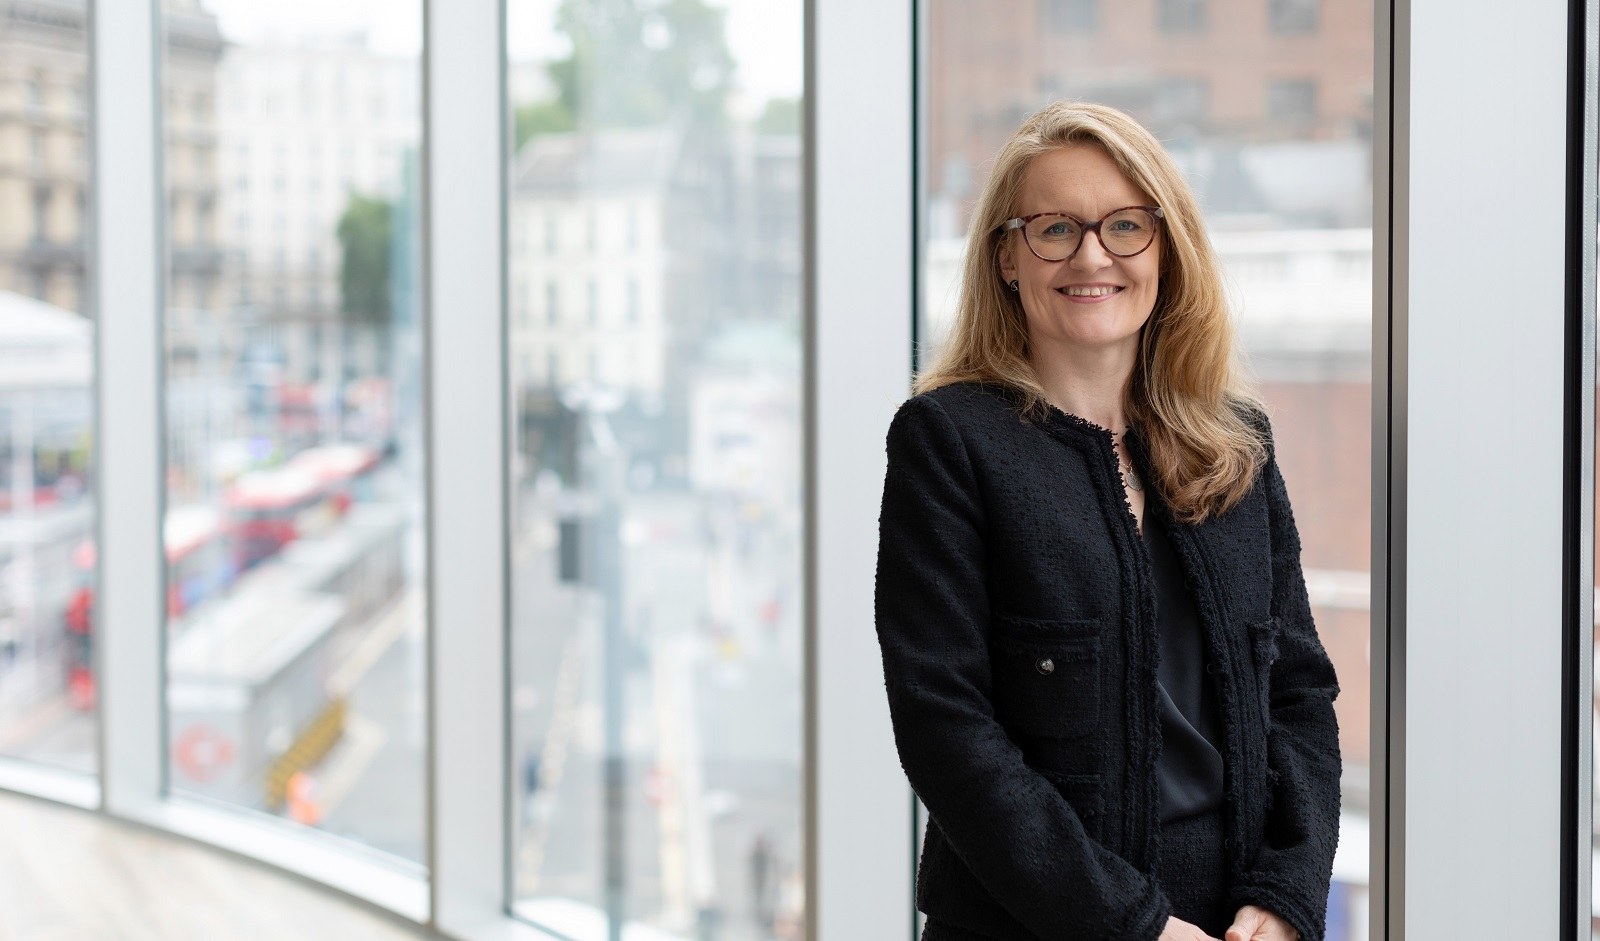 Augusta Business women dressed in formal dress Chief Operating Officer COO Polly Bahl standing and posing for photo with a smile in bright modern London office room next to wide and floor to ceiling windows